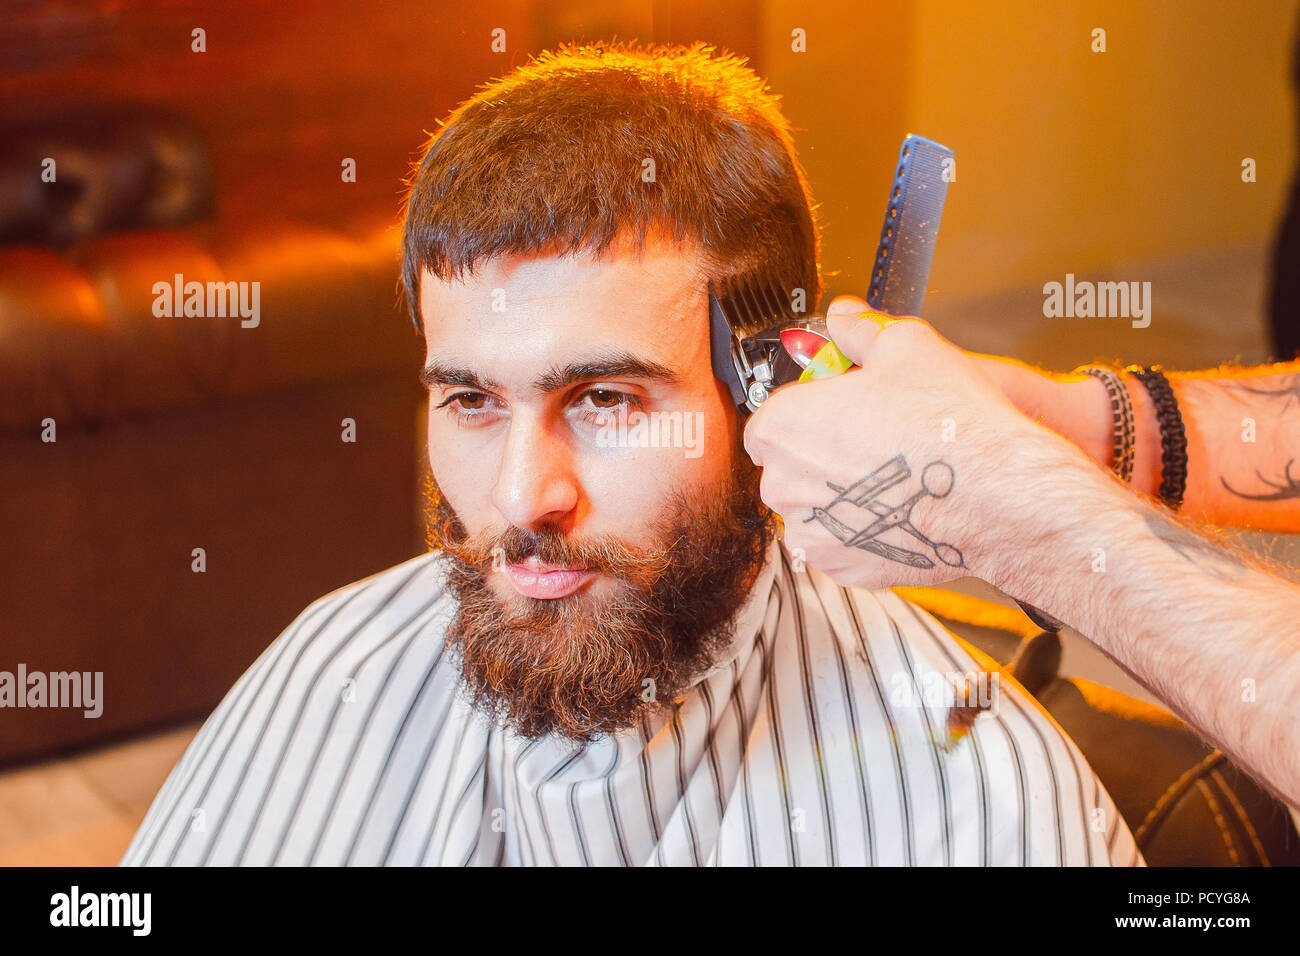 Barber does a haircut on his head with a trimmer to a young handsome guy with a mustache and beard. Men's hair salon. - Stock Image